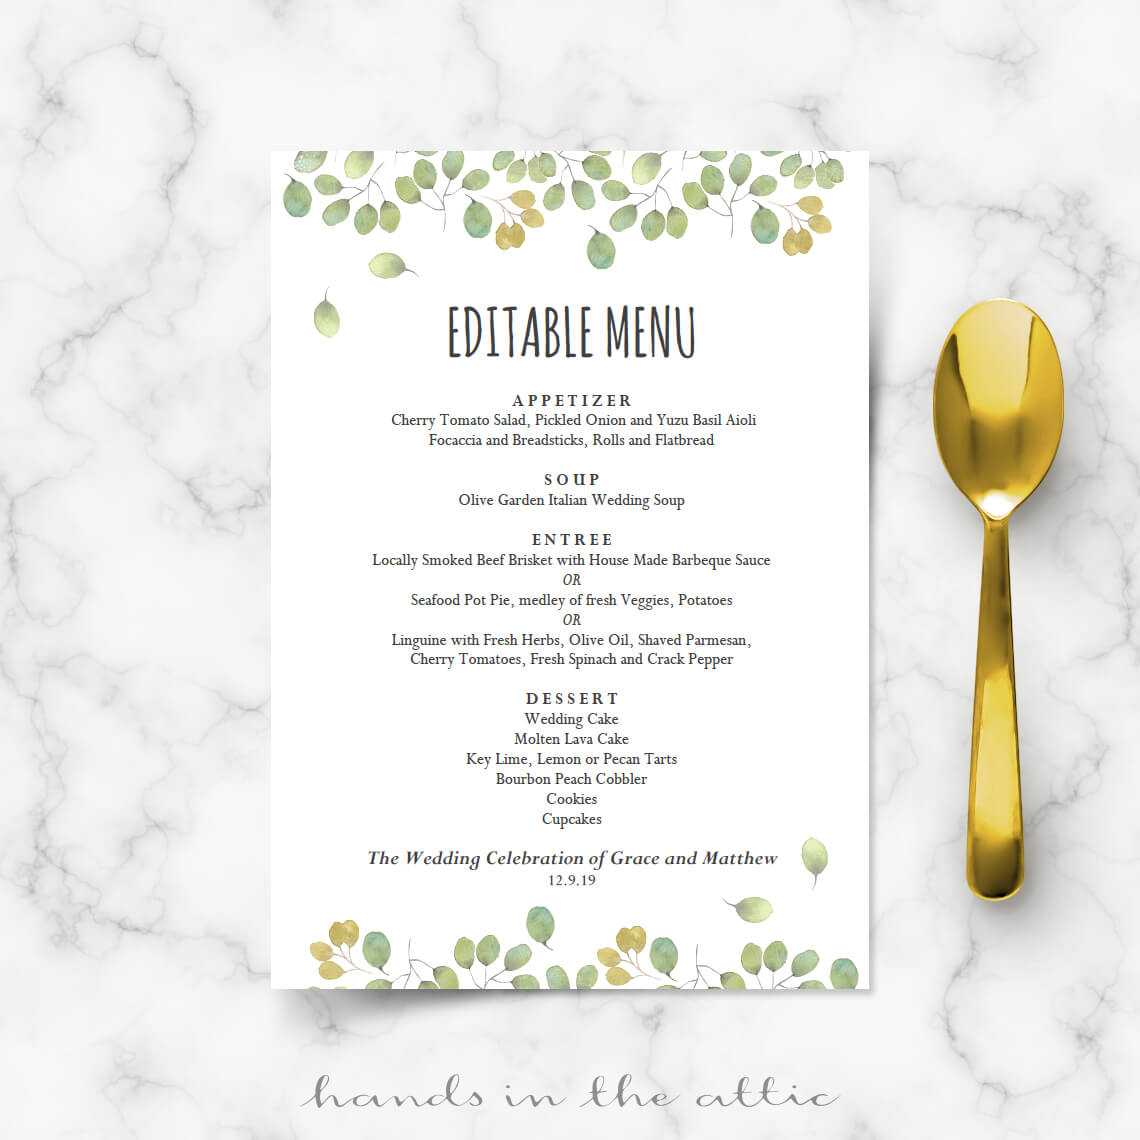 Leaves wedding reception menu template wedding menu for Menu templates for weddings